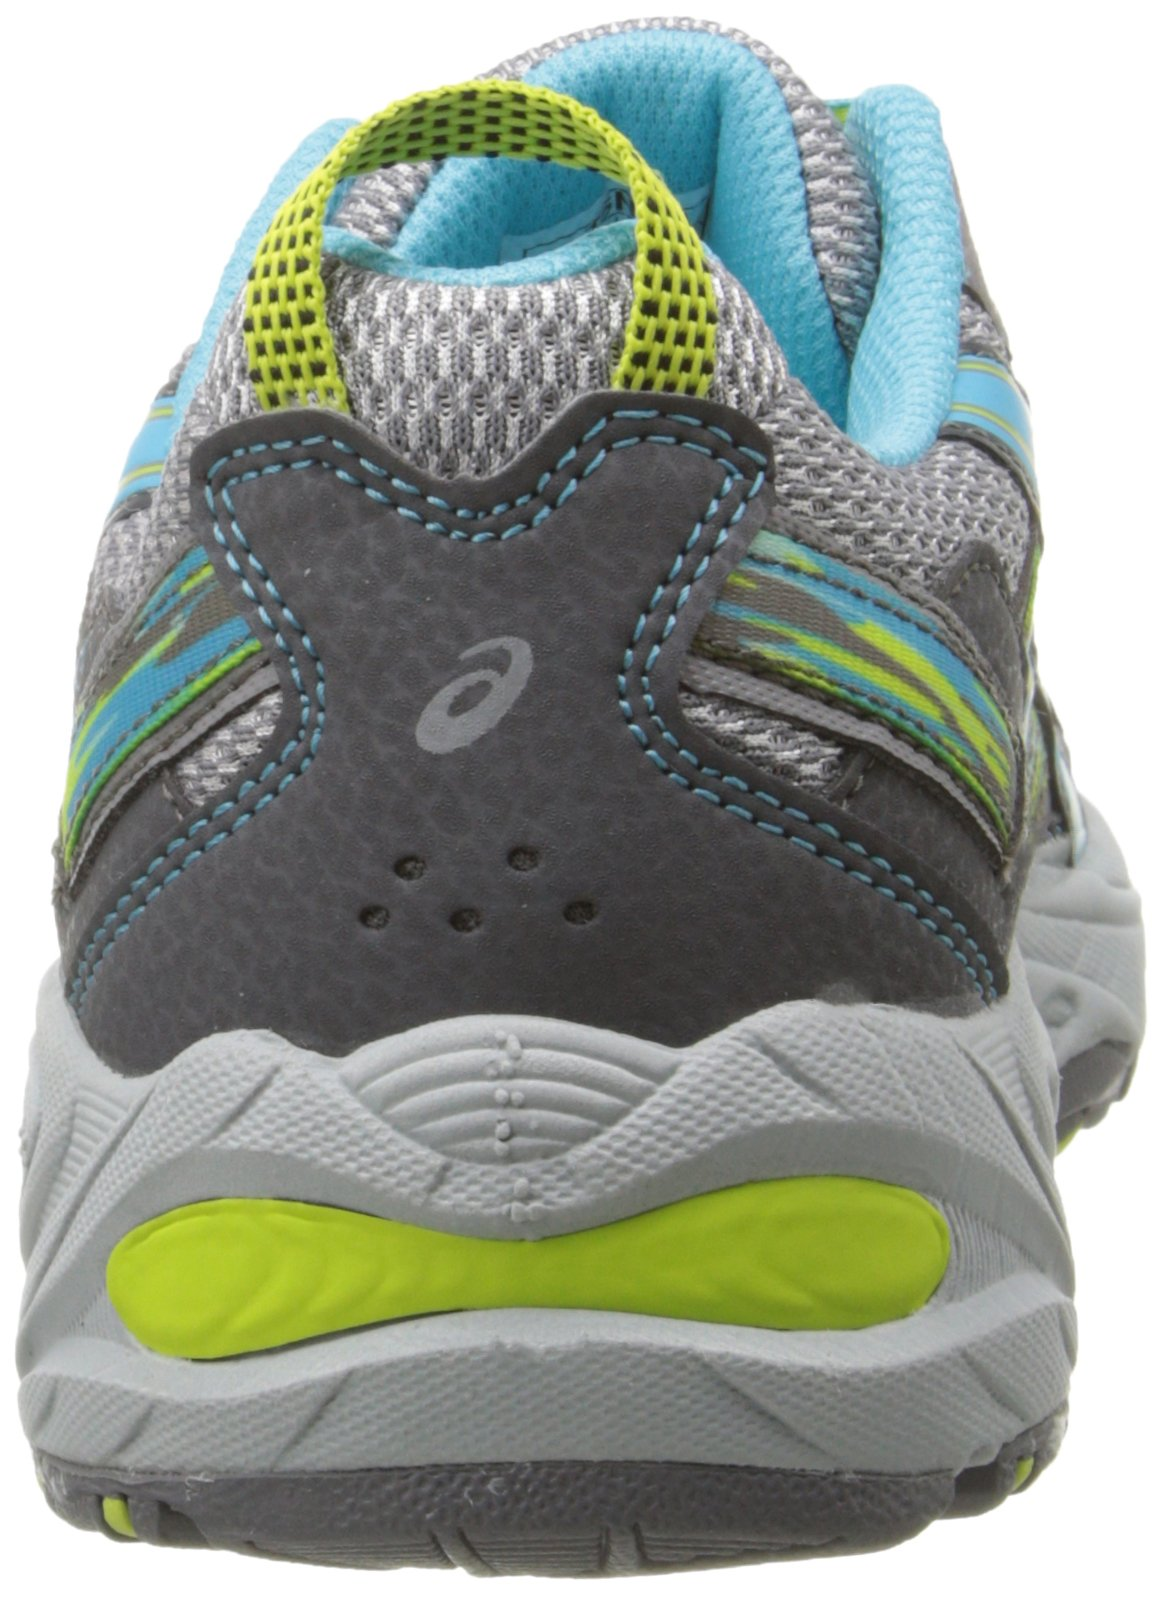 ASICS Women's Gel-Venture 5 Running Shoe, Silver Grey/Turquoise/Lime Punch, 6 M US by ASICS (Image #2)